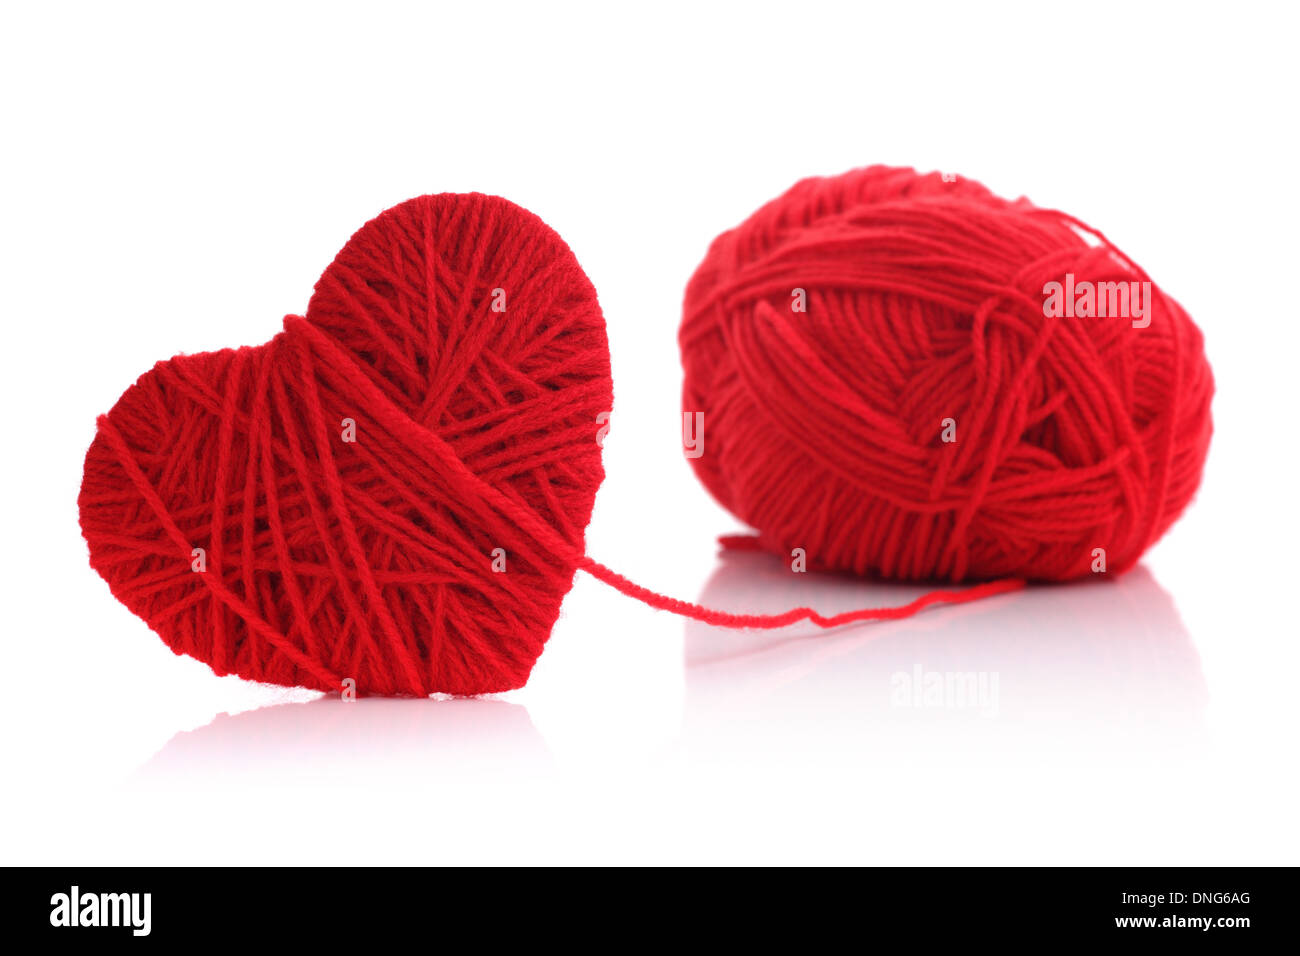 Yarn of wool in heart shape symbol - Stock Image